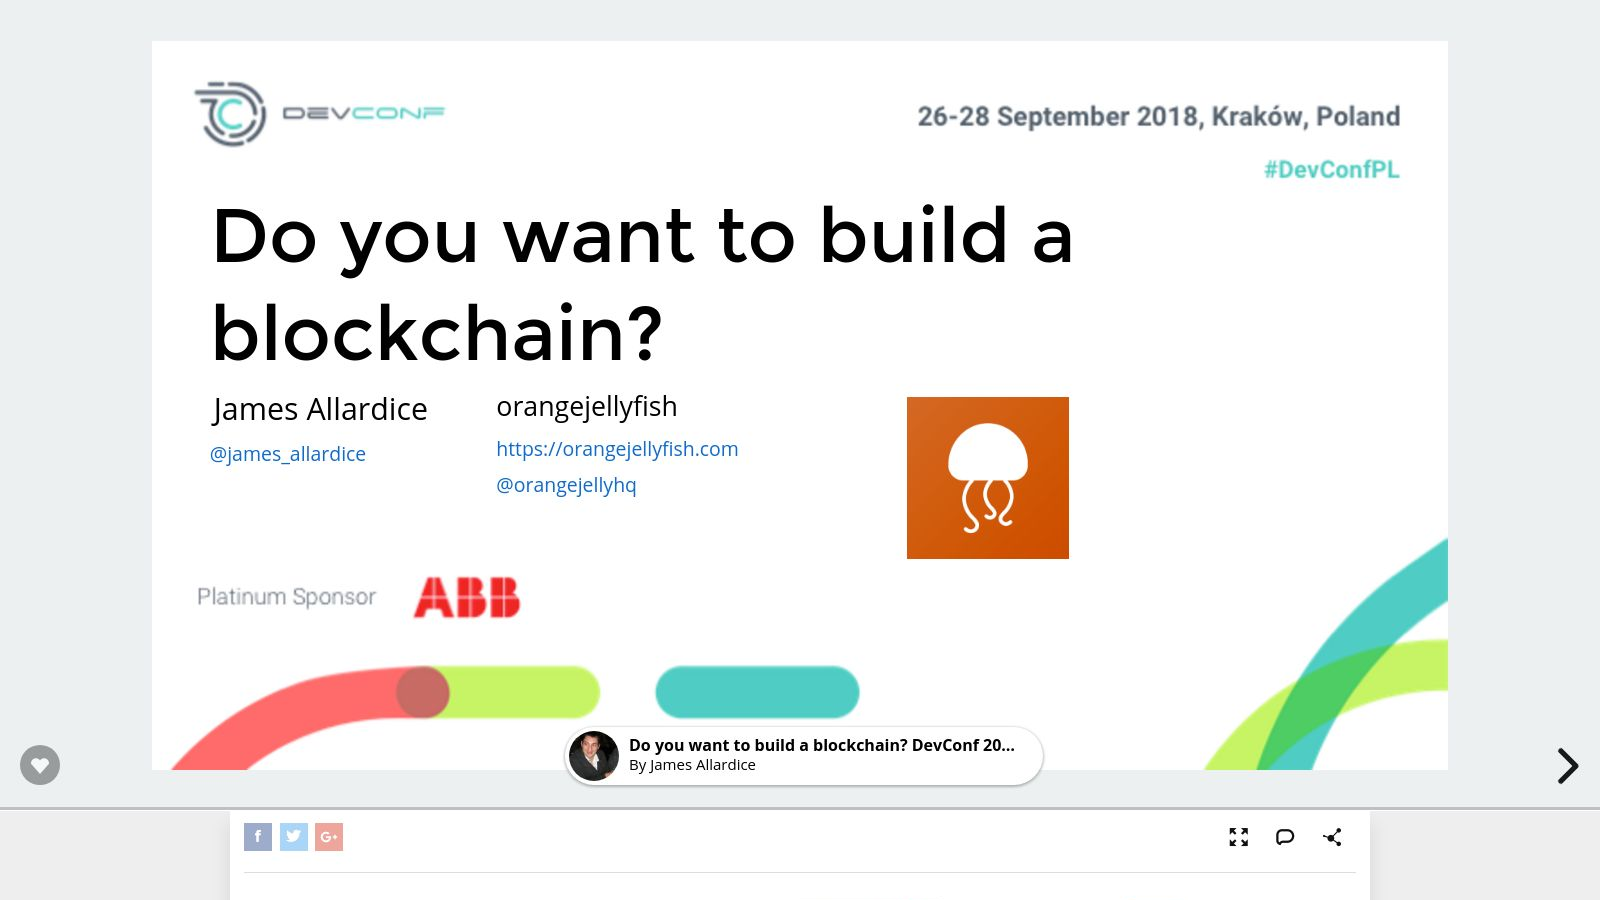 Do you want to build a blockchain?